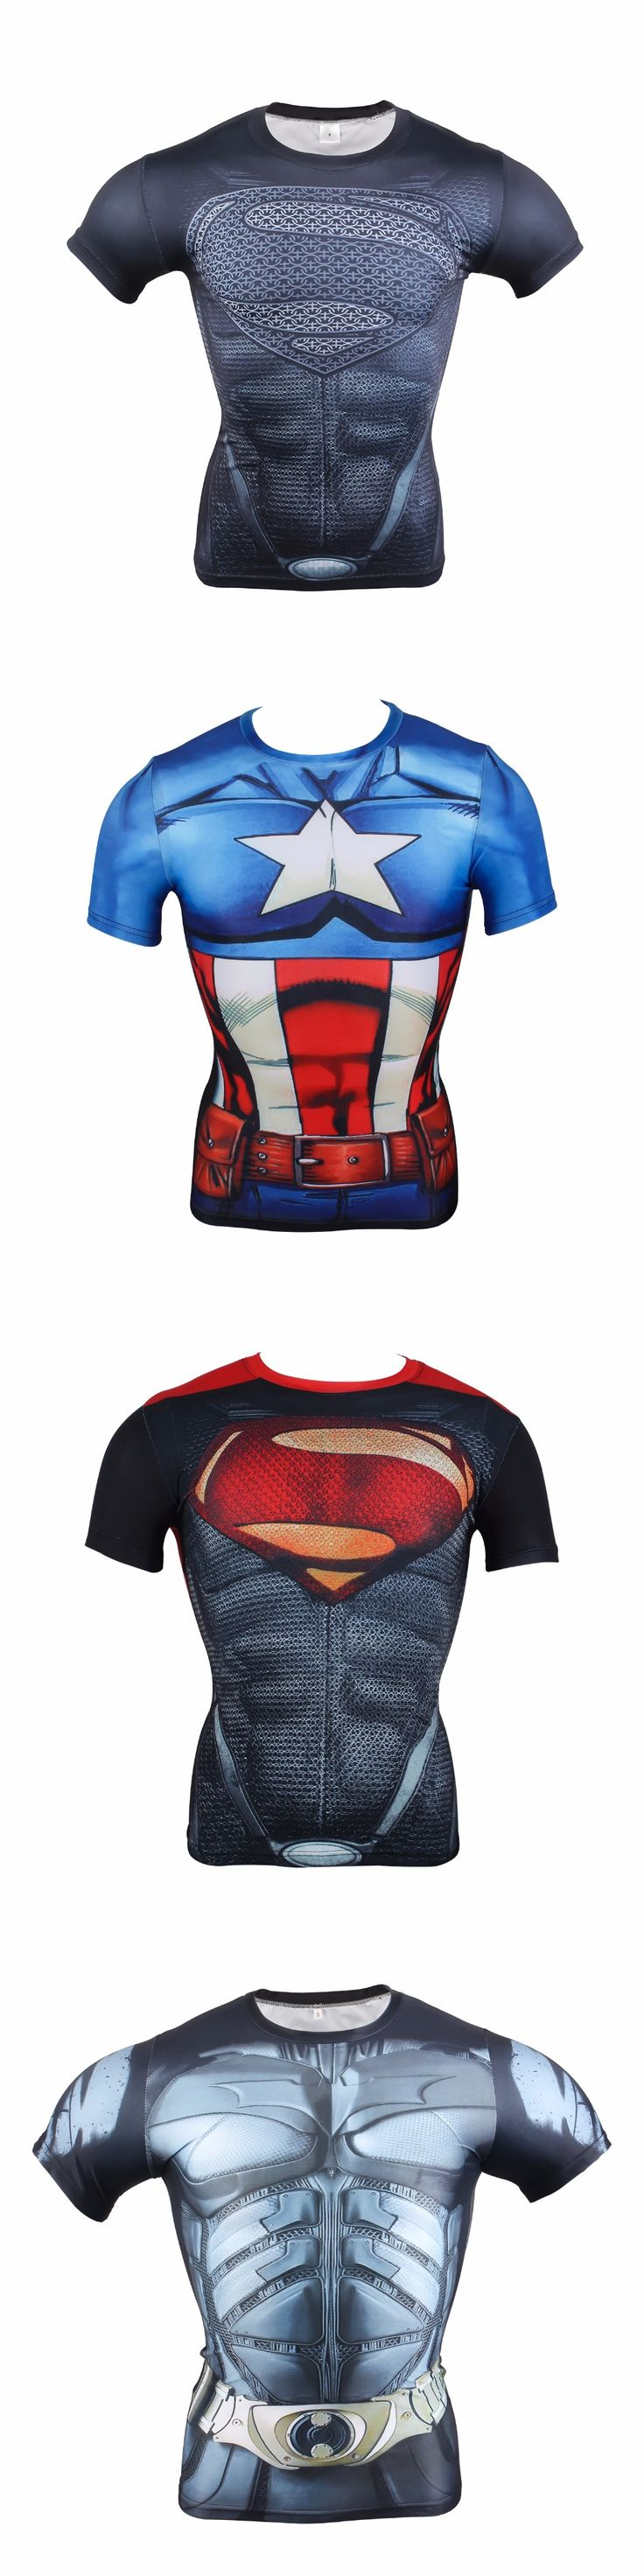 2017 Men Marvel Superheros Superman vs Batman Spiderman T-Shirt homme Compression Costume Plus size Captain America 3 Civil War